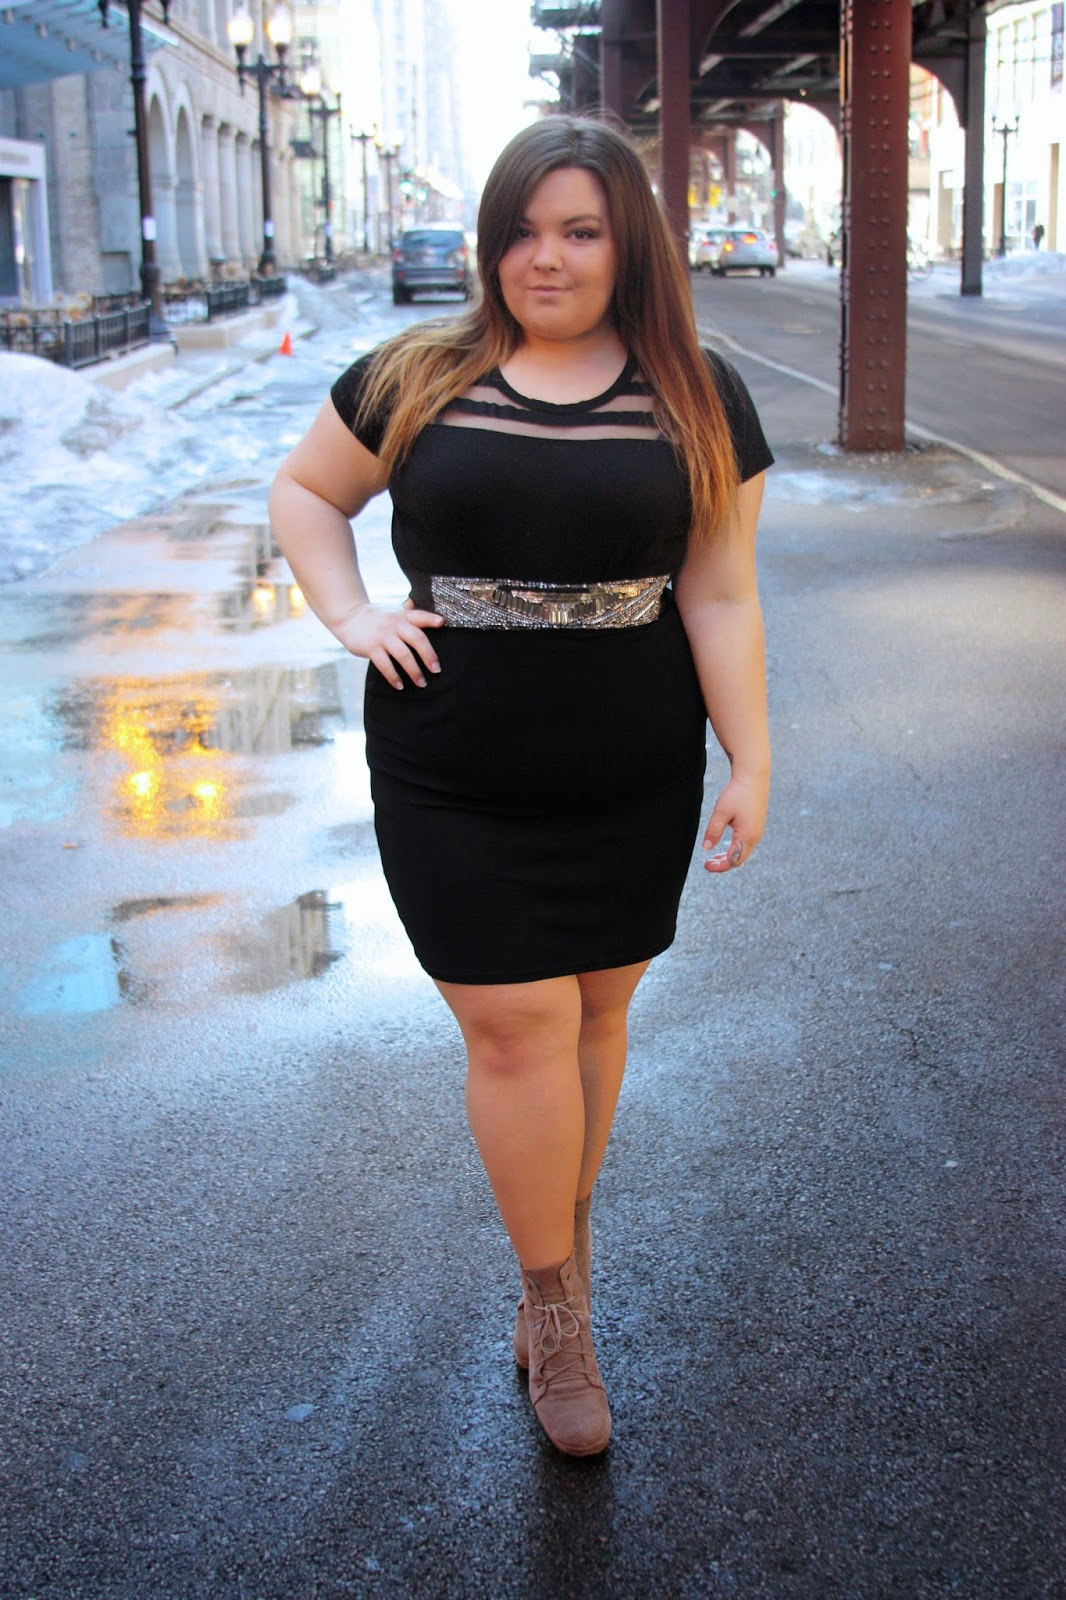 how to wear a belt, curvy fashionista, bbw, natalie craig, natalie in the city, chicago, plus size fashion blogger, curves, body positivity, fat acceptance movement, kim kardashian, ankle boots, Urban Outfitters,  ootd, outfit of the day, pencil skirt, long pencil skirt